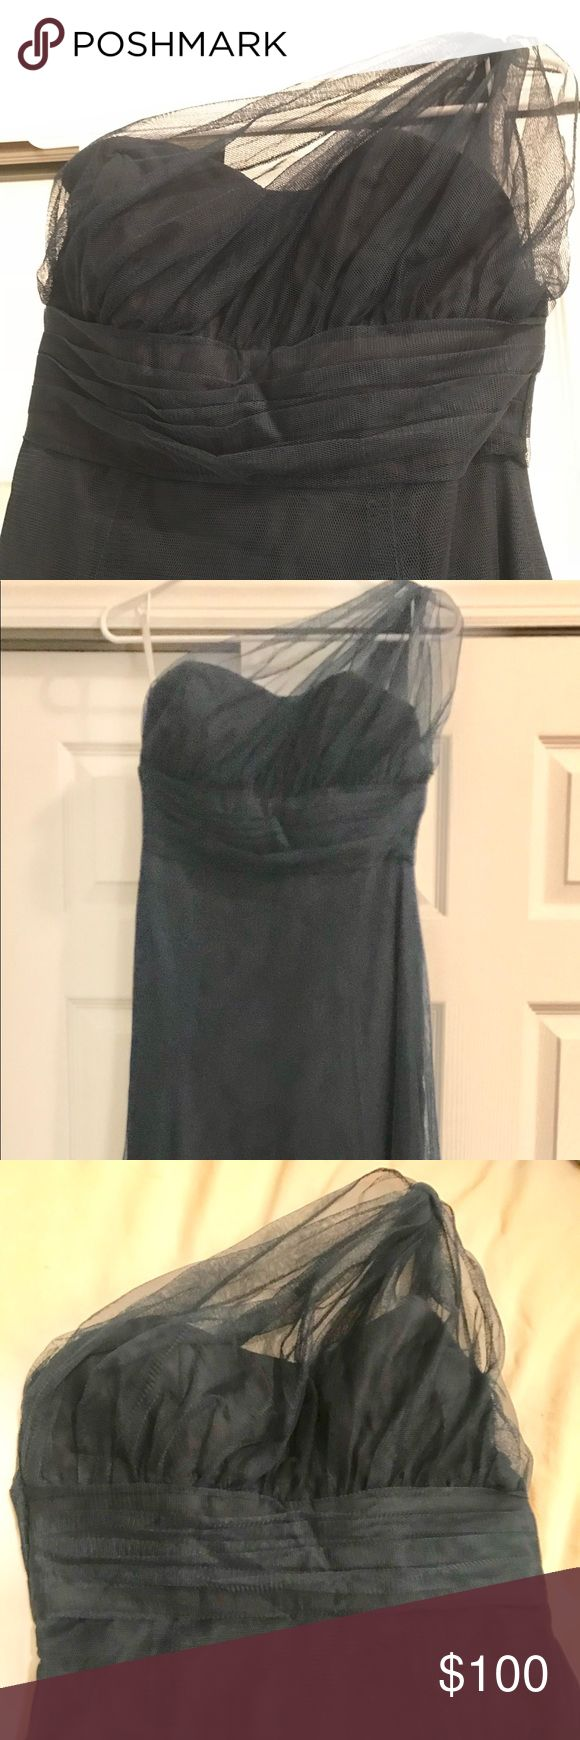 "WToo Floor Length One Shoulder Bridesmaid Dress This is a size 6 XL (XL for length), tailored to fit a size 4. It's navy blue, although the pictures make it look more black. It's blue.   Worn one time and is in excellent condition. No rips or snags in the fabric. All hardware, zippers and hooks are completely intact. Little to no wear on the bottom hem of the dress.   I wore this dress with 5in heels, I'm 5'8"" 135 lbs and it was hardly touching the floor. Wtoo Dresses Wedding"